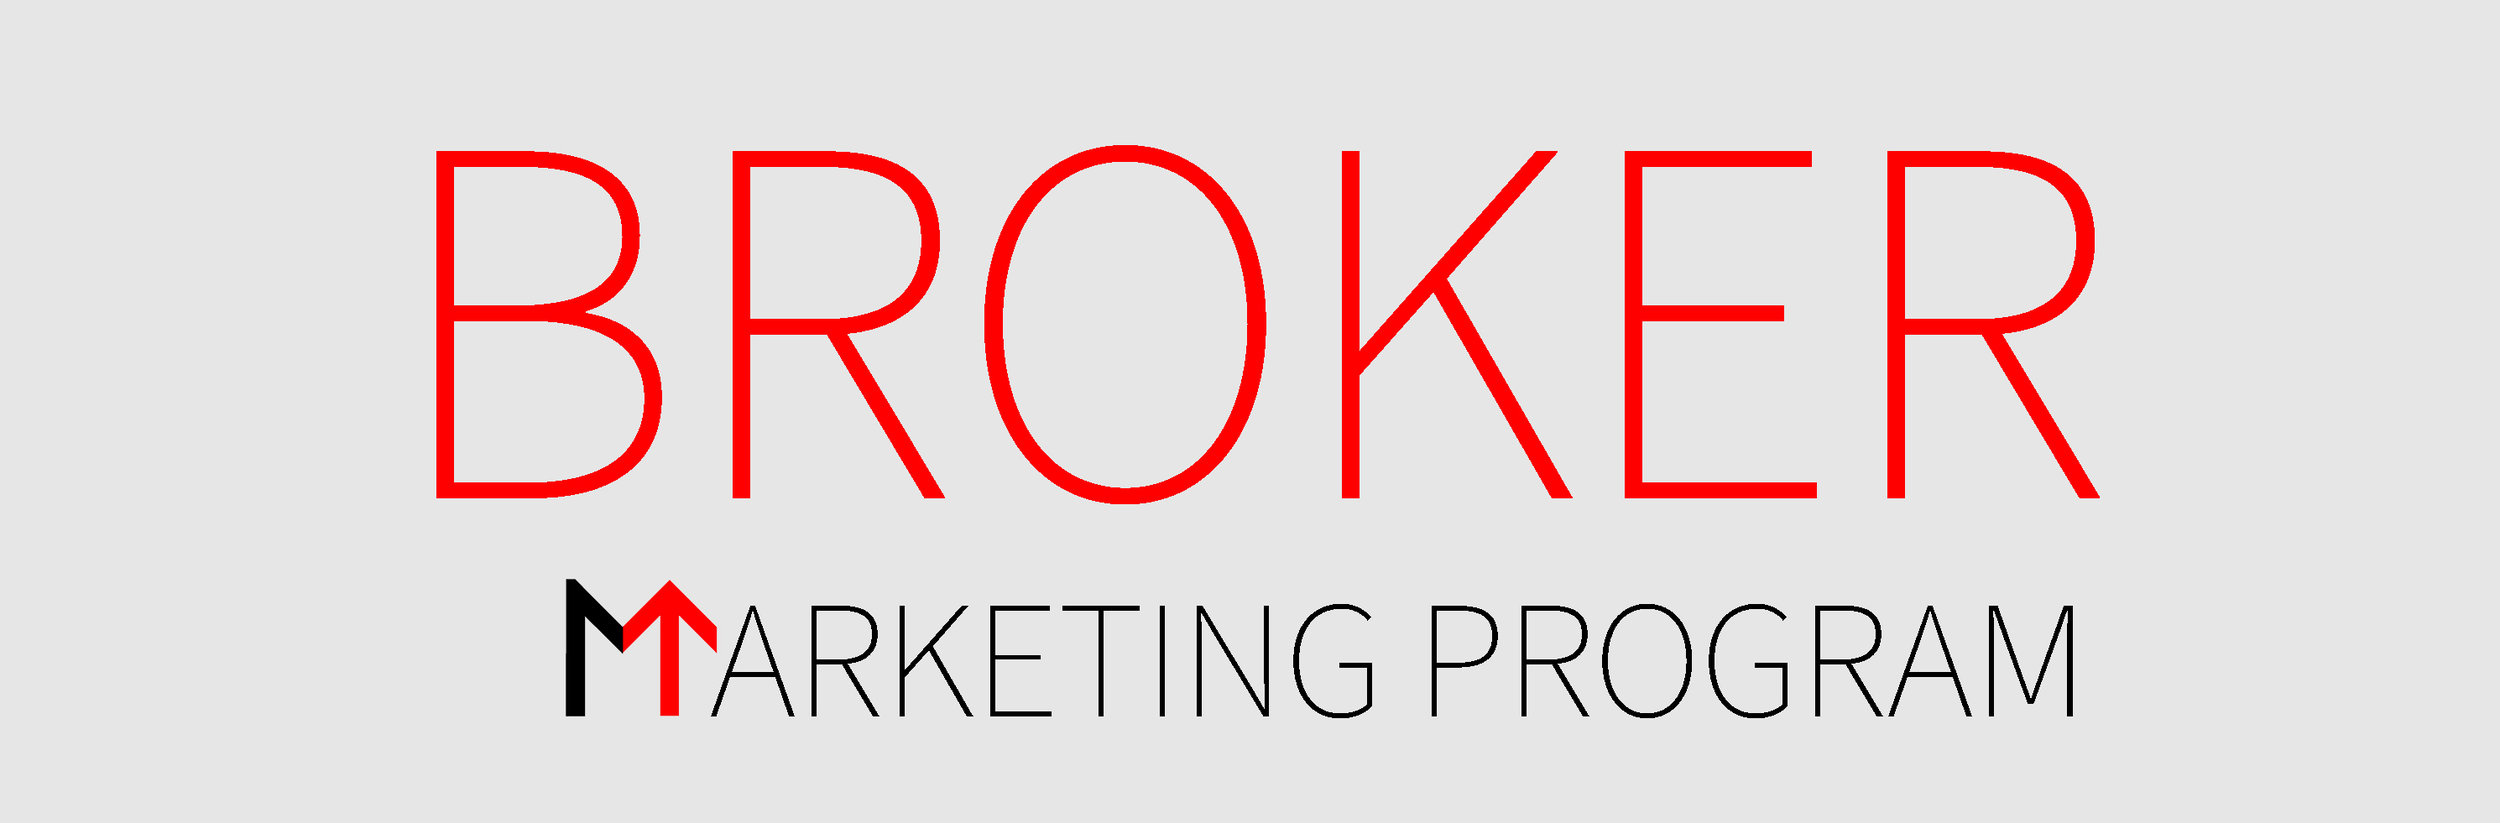 Broker Marketing Program Front Image.jpg